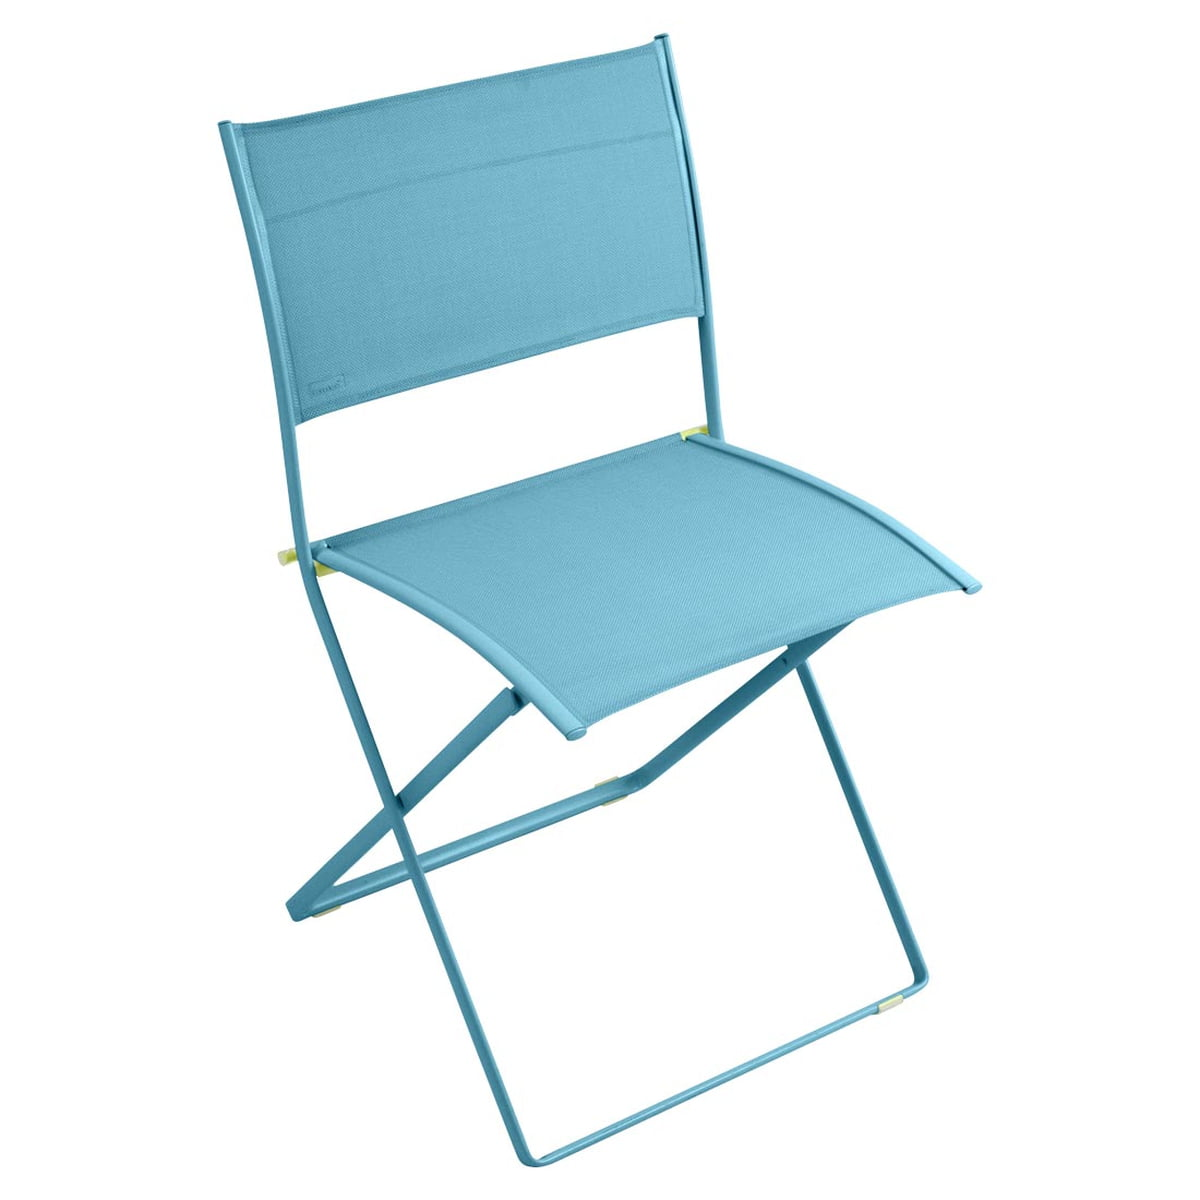 Plein air chair by fermob connox shop for Air chair stuhl